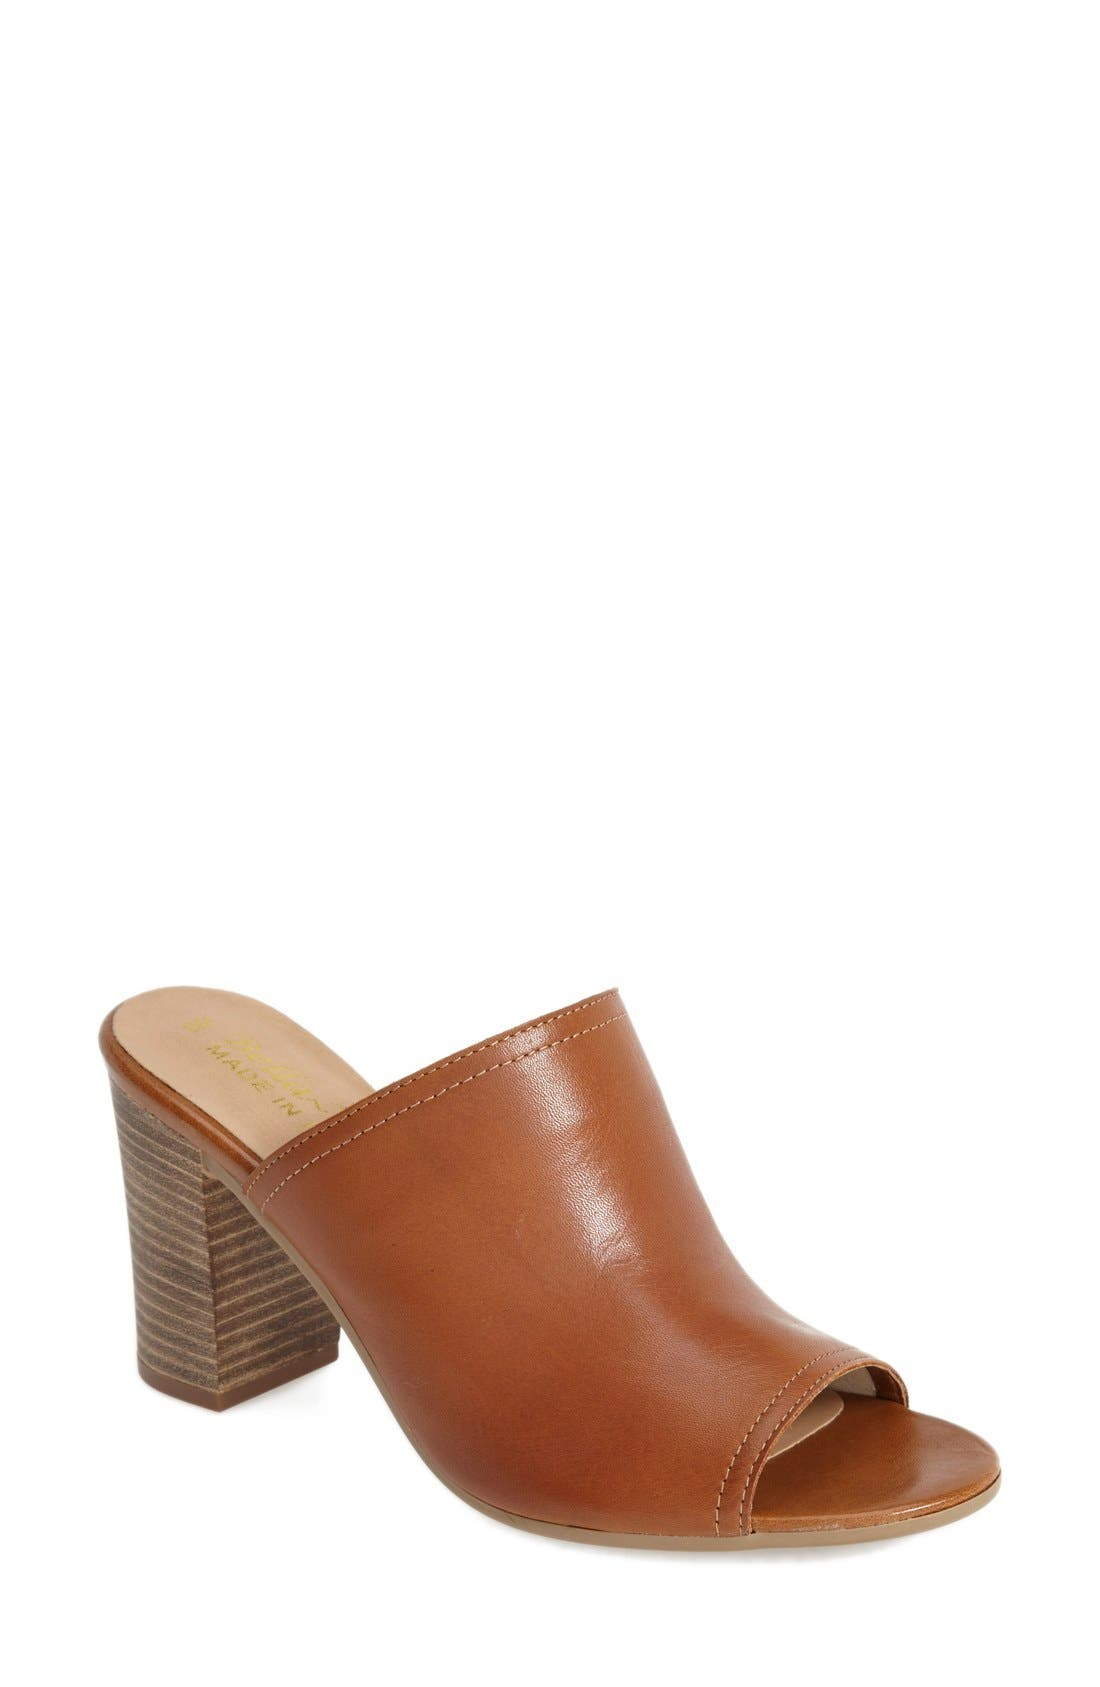 Alternate Image 1 Selected - Bella Vita 'Arno' Leather Mule (Women)